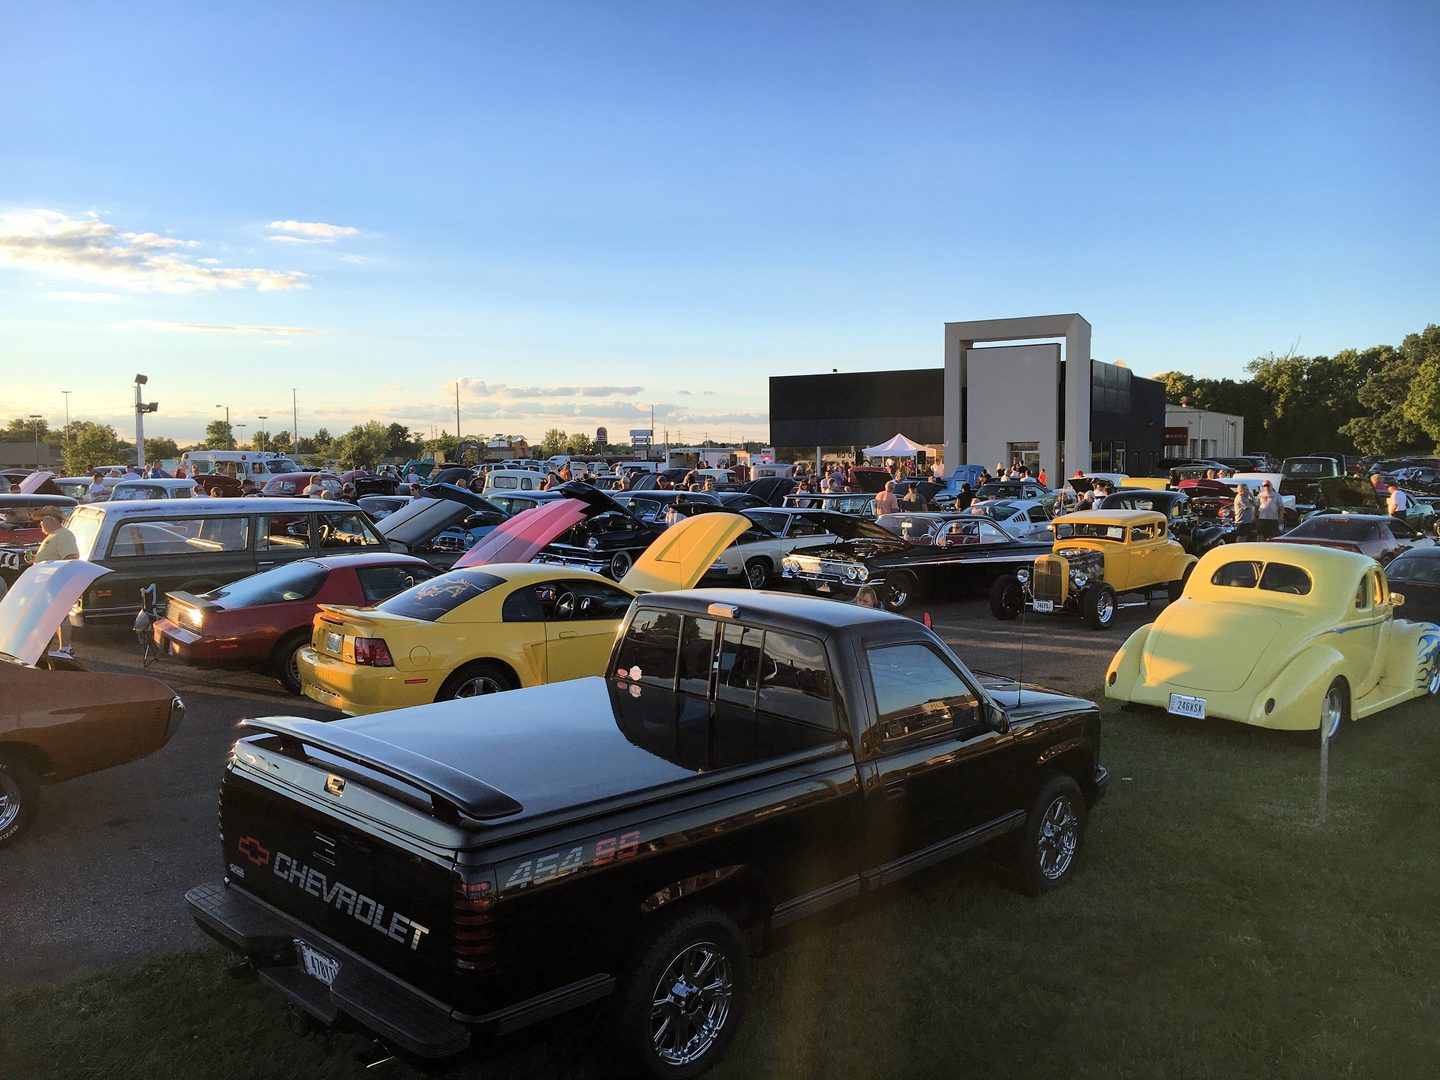 Ohio Auto Shows Cruisein Swap Meets RoundTownCruisersorg - Lancaster ohio car show 2018